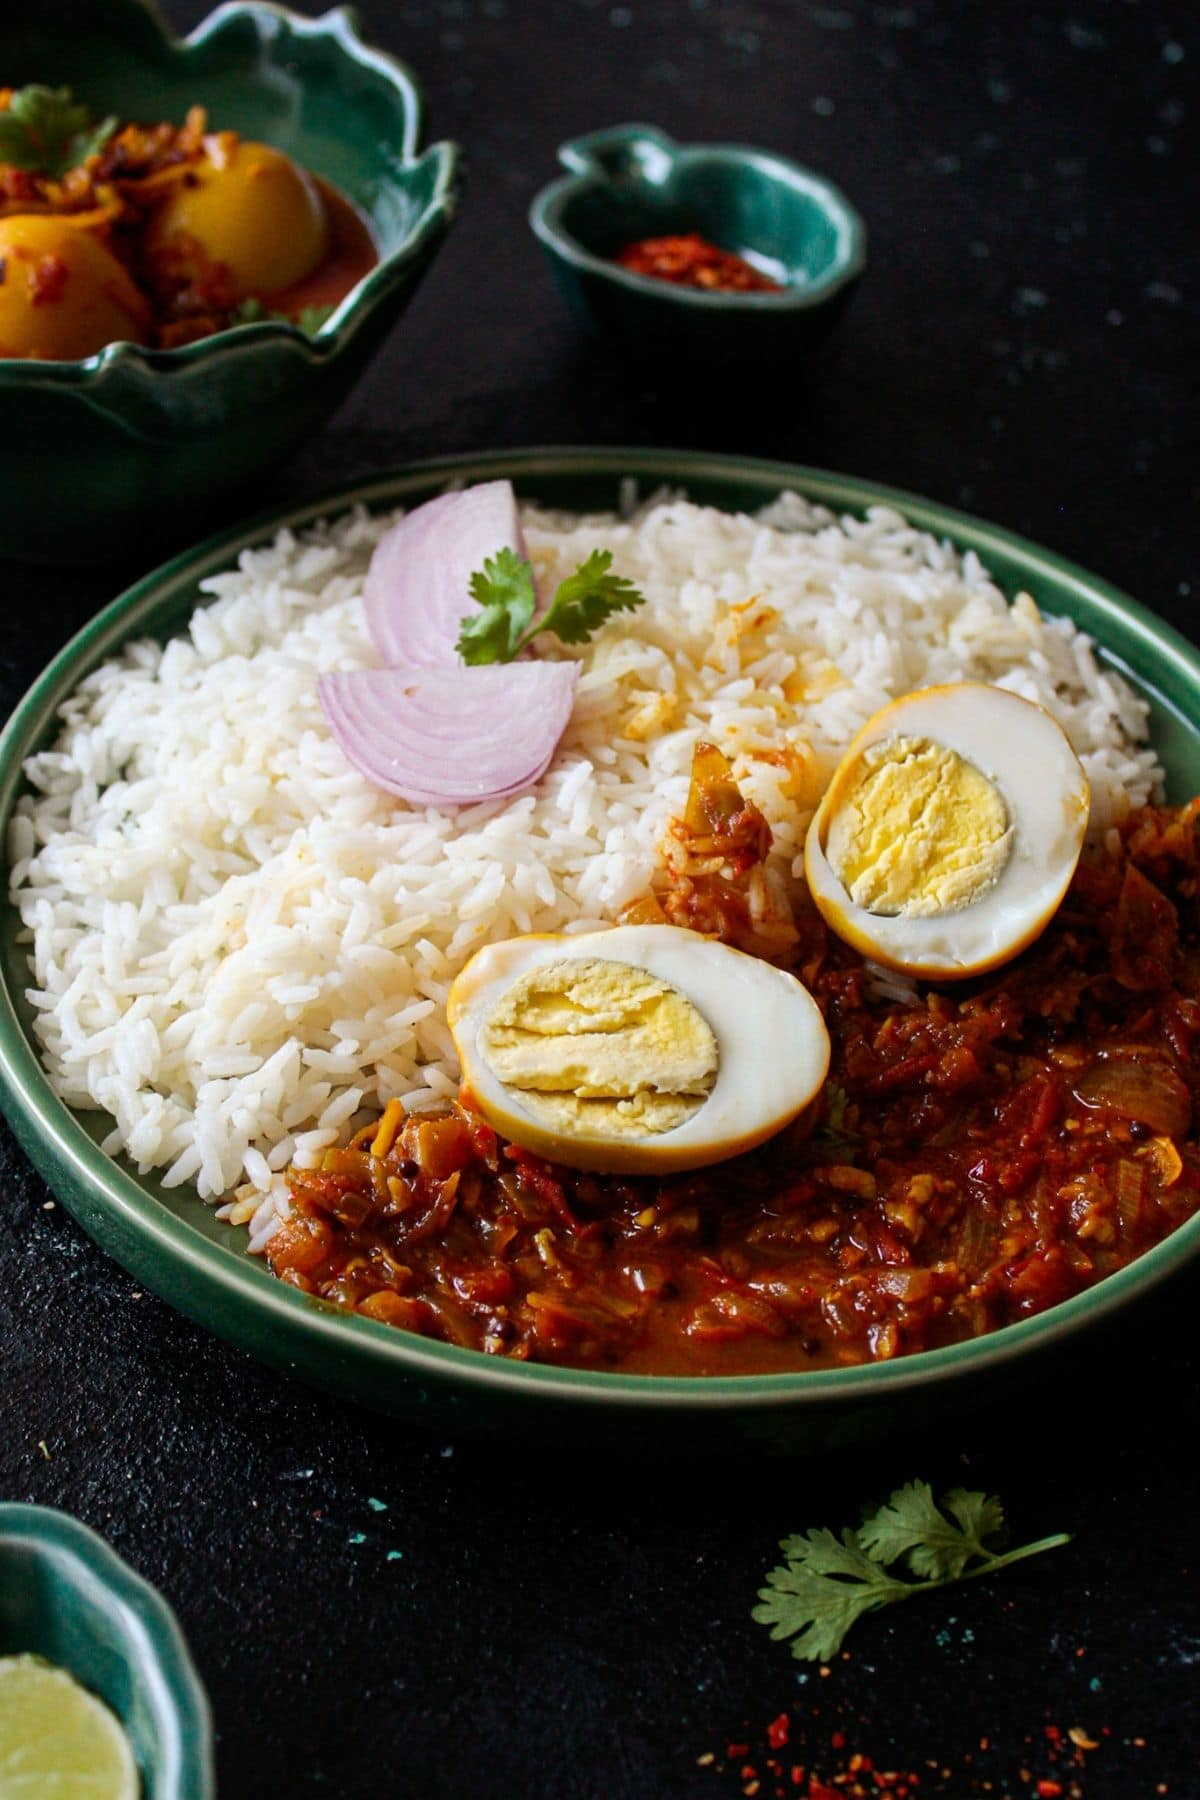 Sliced hard boiled egg on top of red curry by rice in green bowl